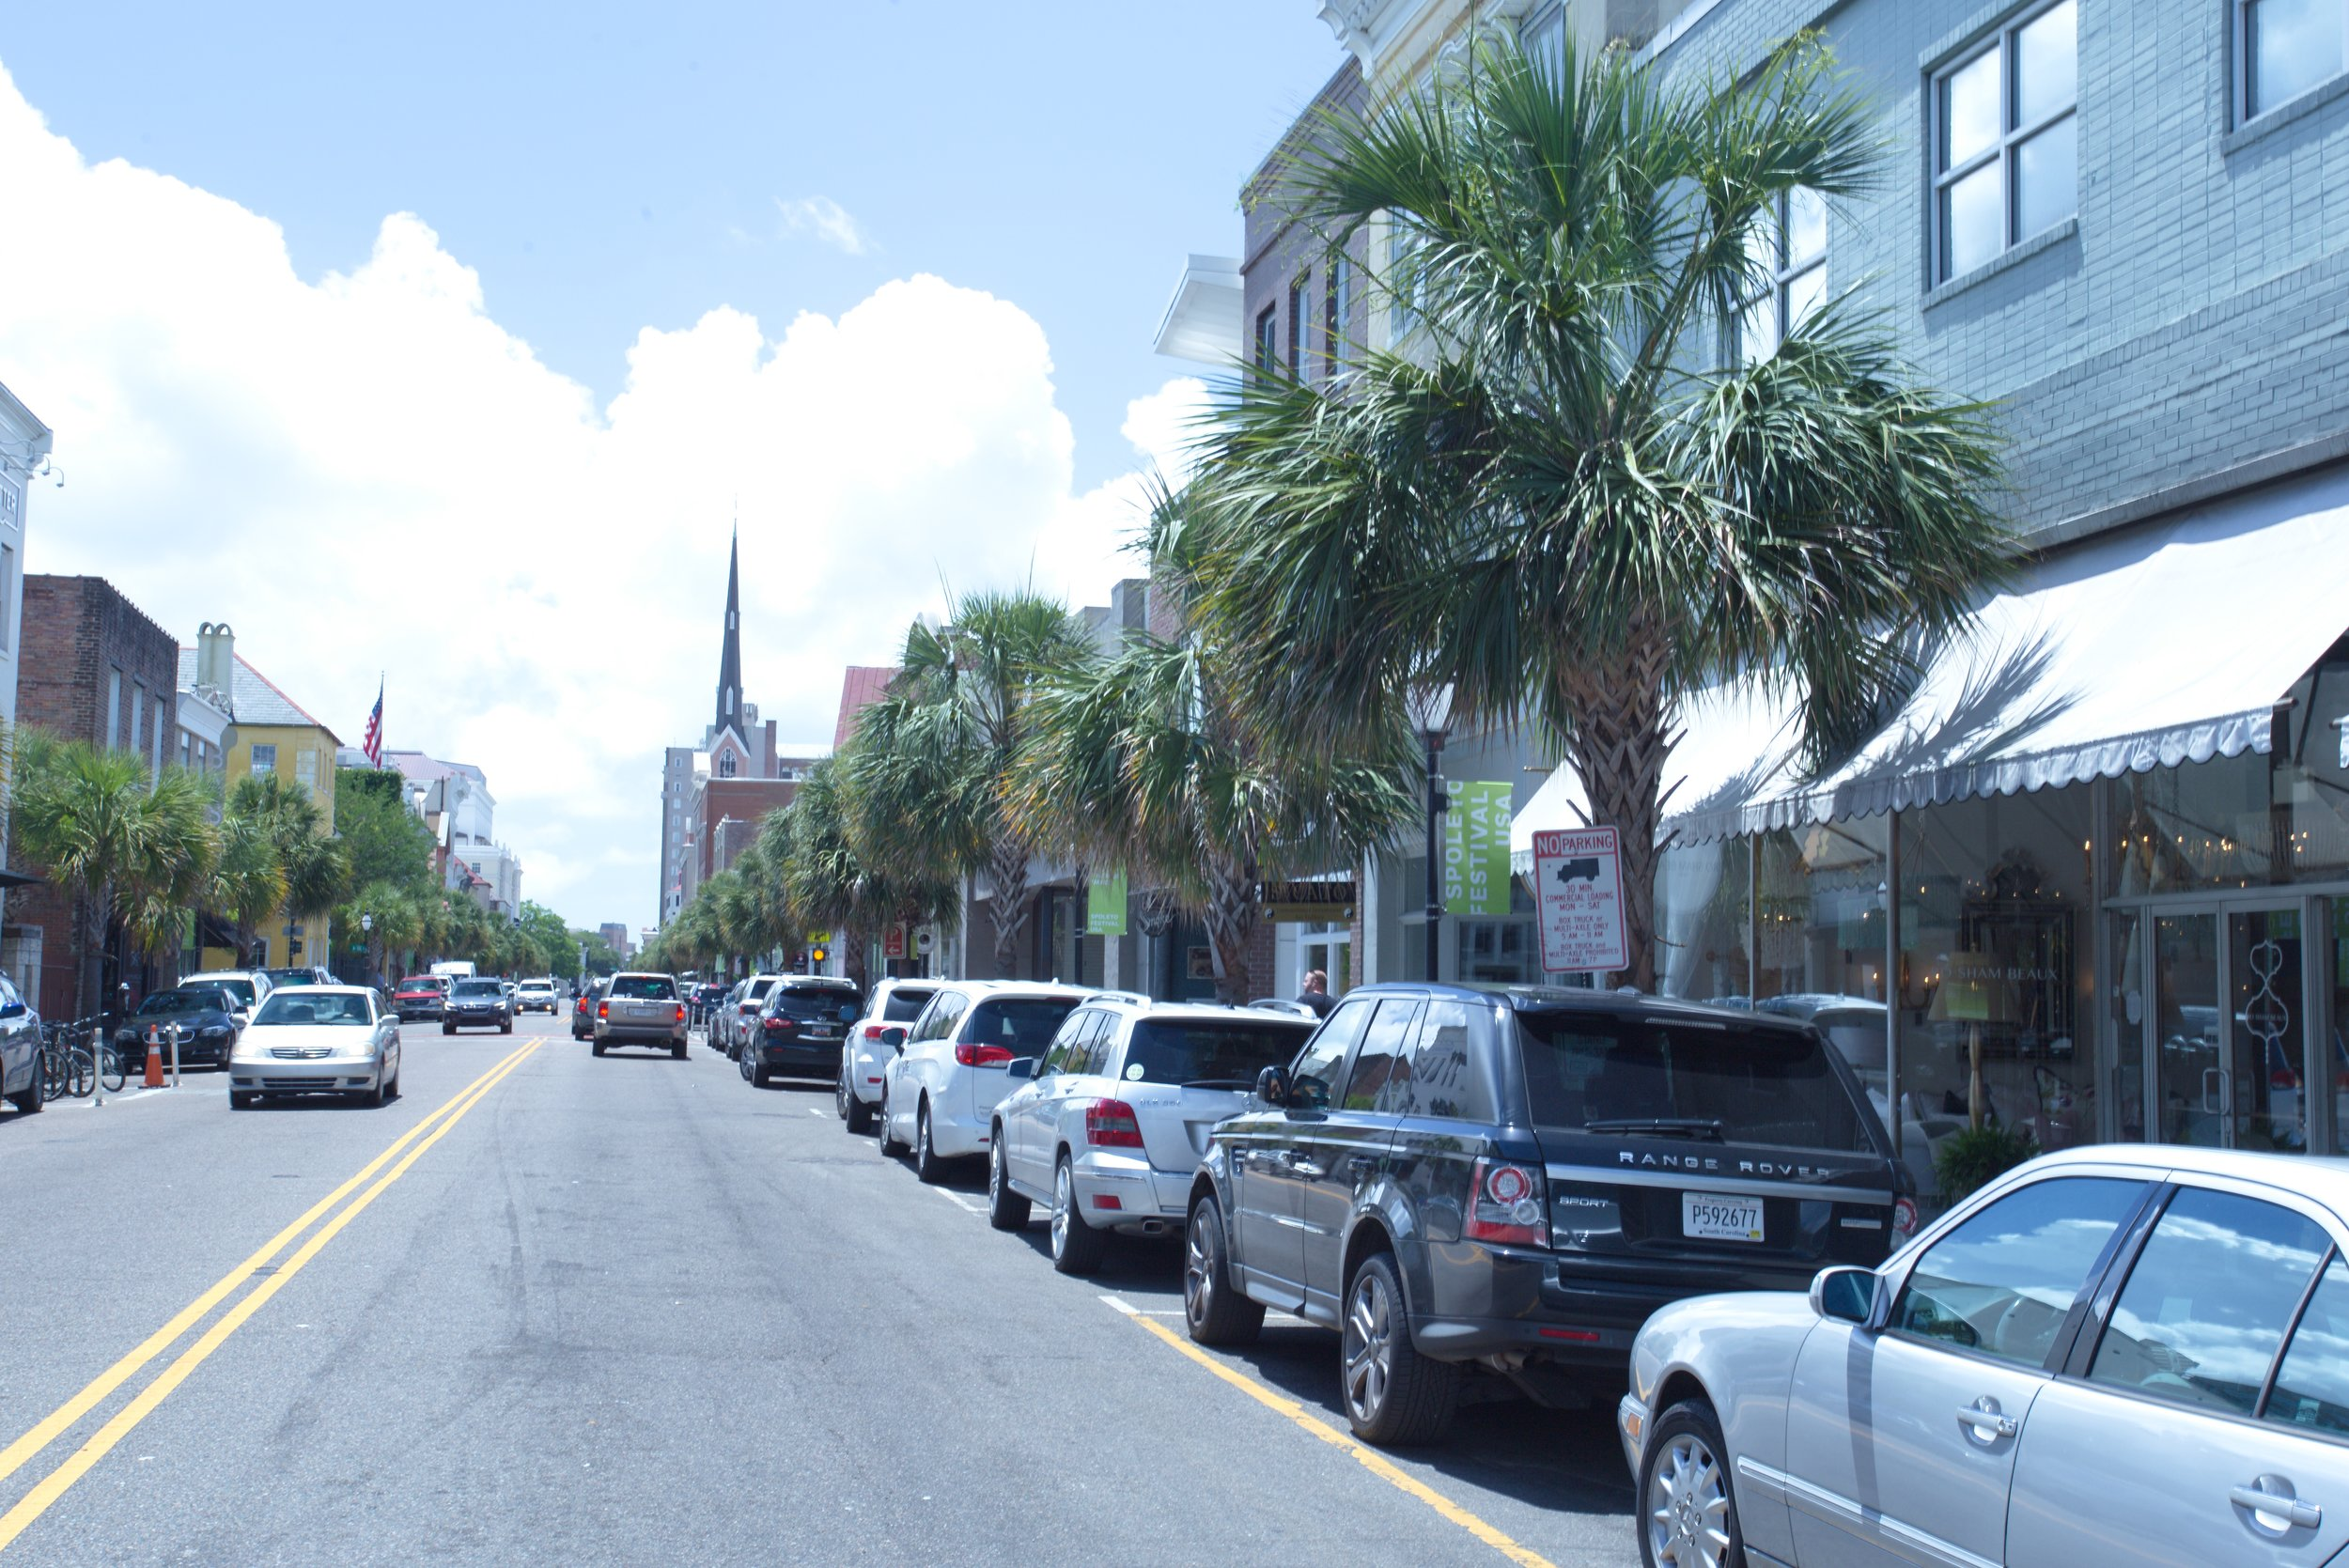 4Charleston SC King Street Shopping and Restaurants Nearby13.jpeg